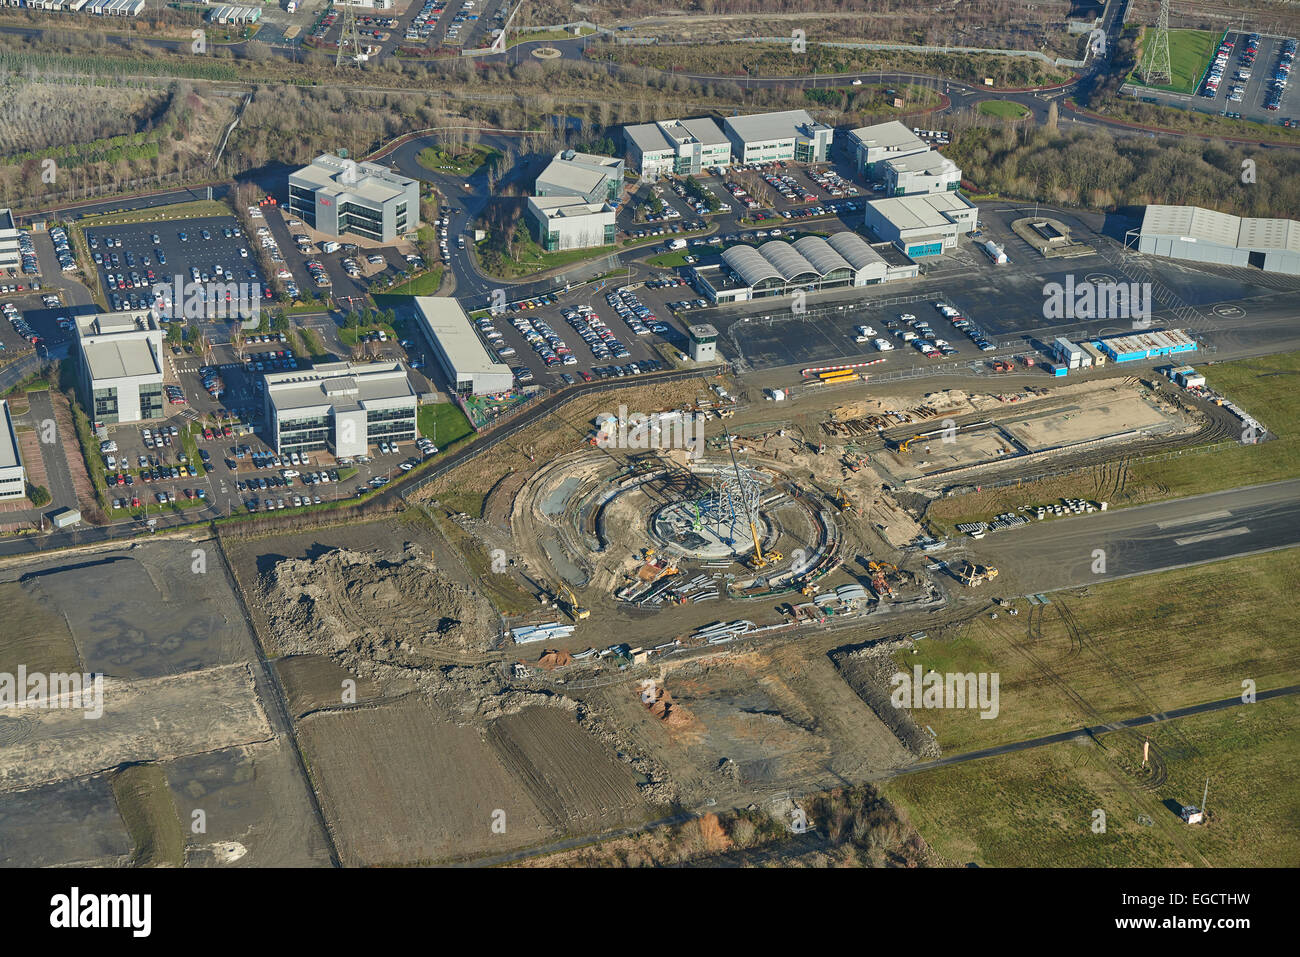 Aerial photograph of runway redevelopment at Tinsley, Sheffield - Stock Image